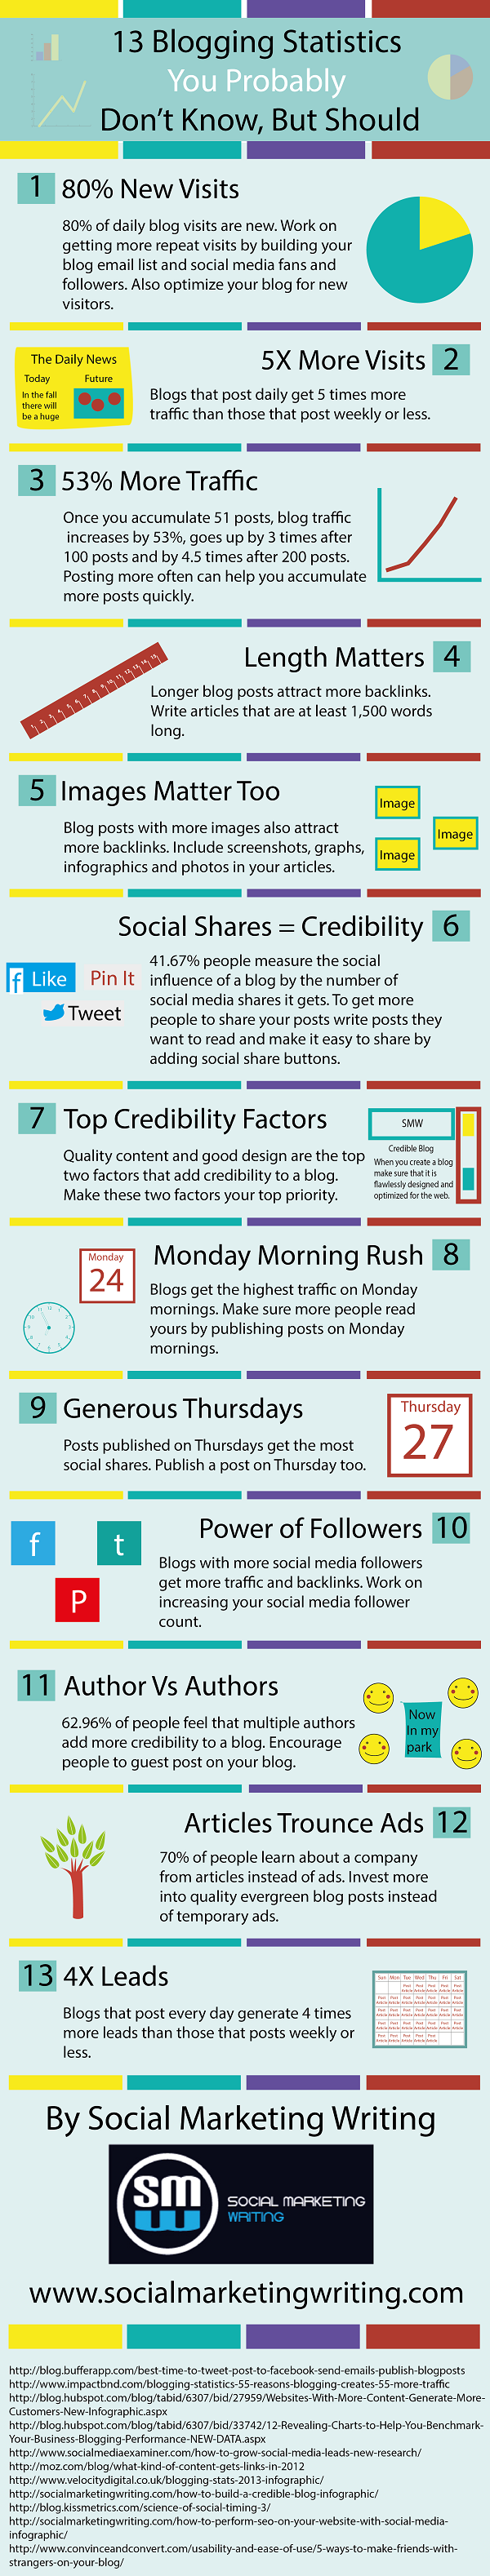 13 Blogging Stats to Help Your Blog Grow in 2014 [INFOGRAPHIC]